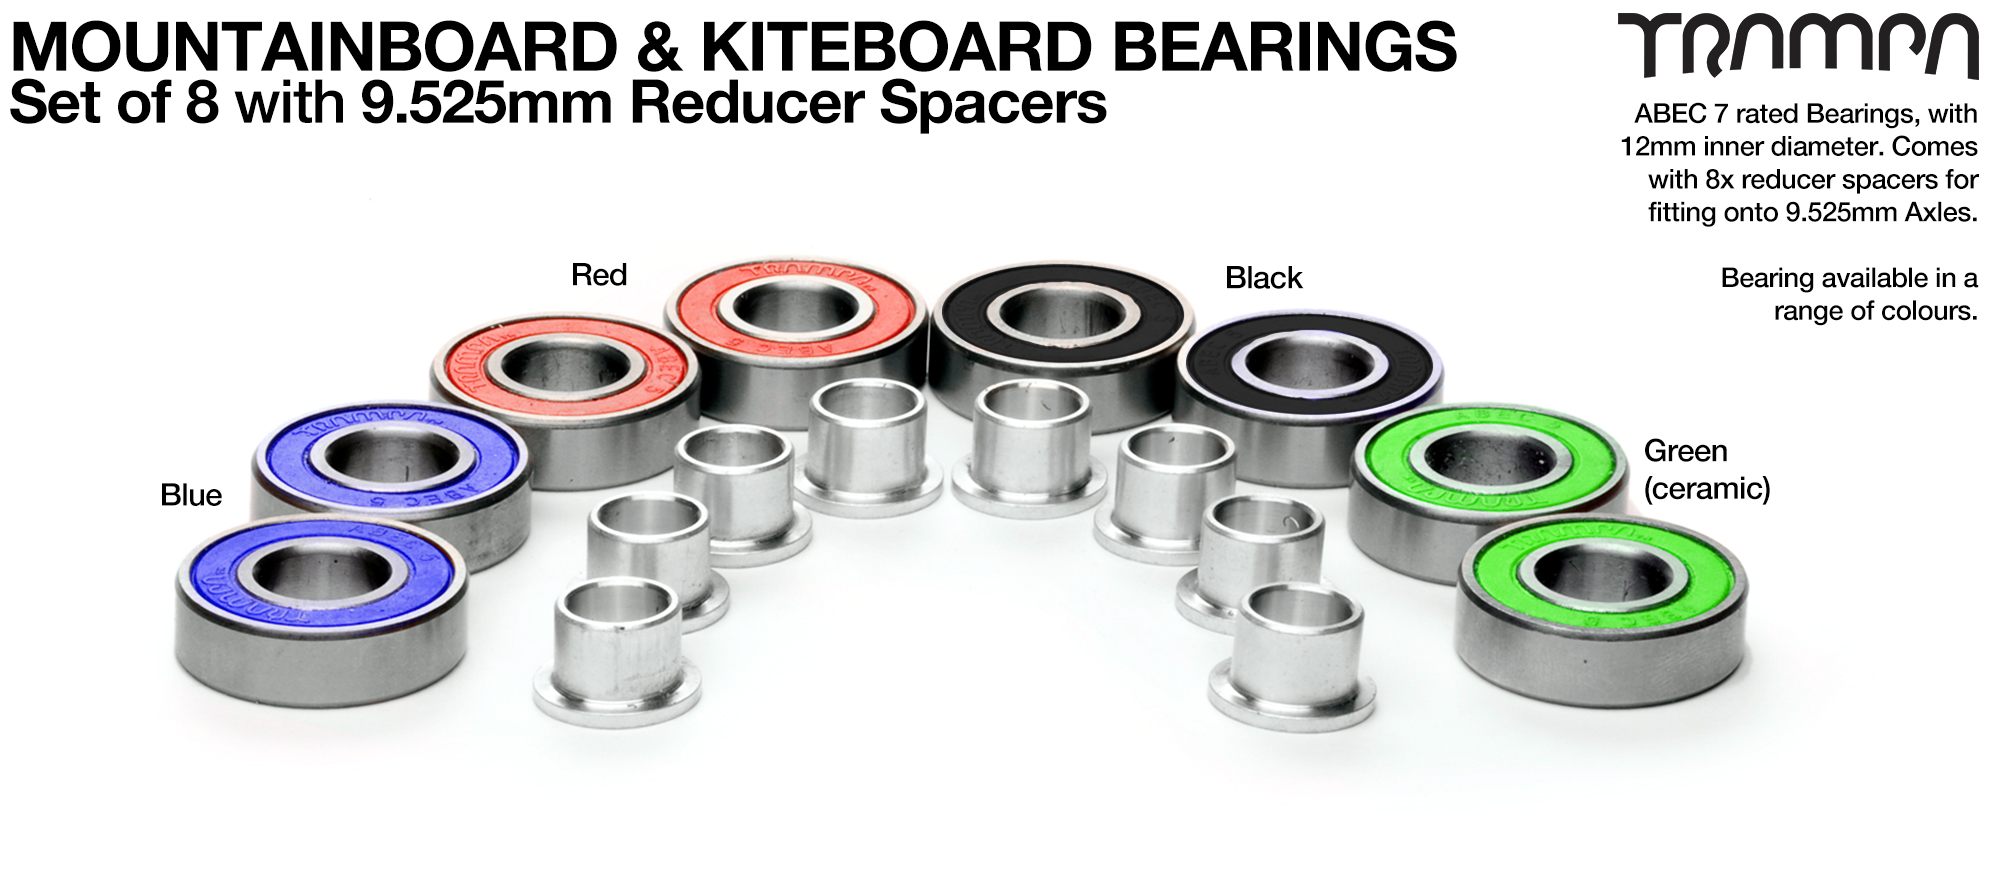 12mm REDS Bearings ABEC 5 rated with conversion spacers x 8